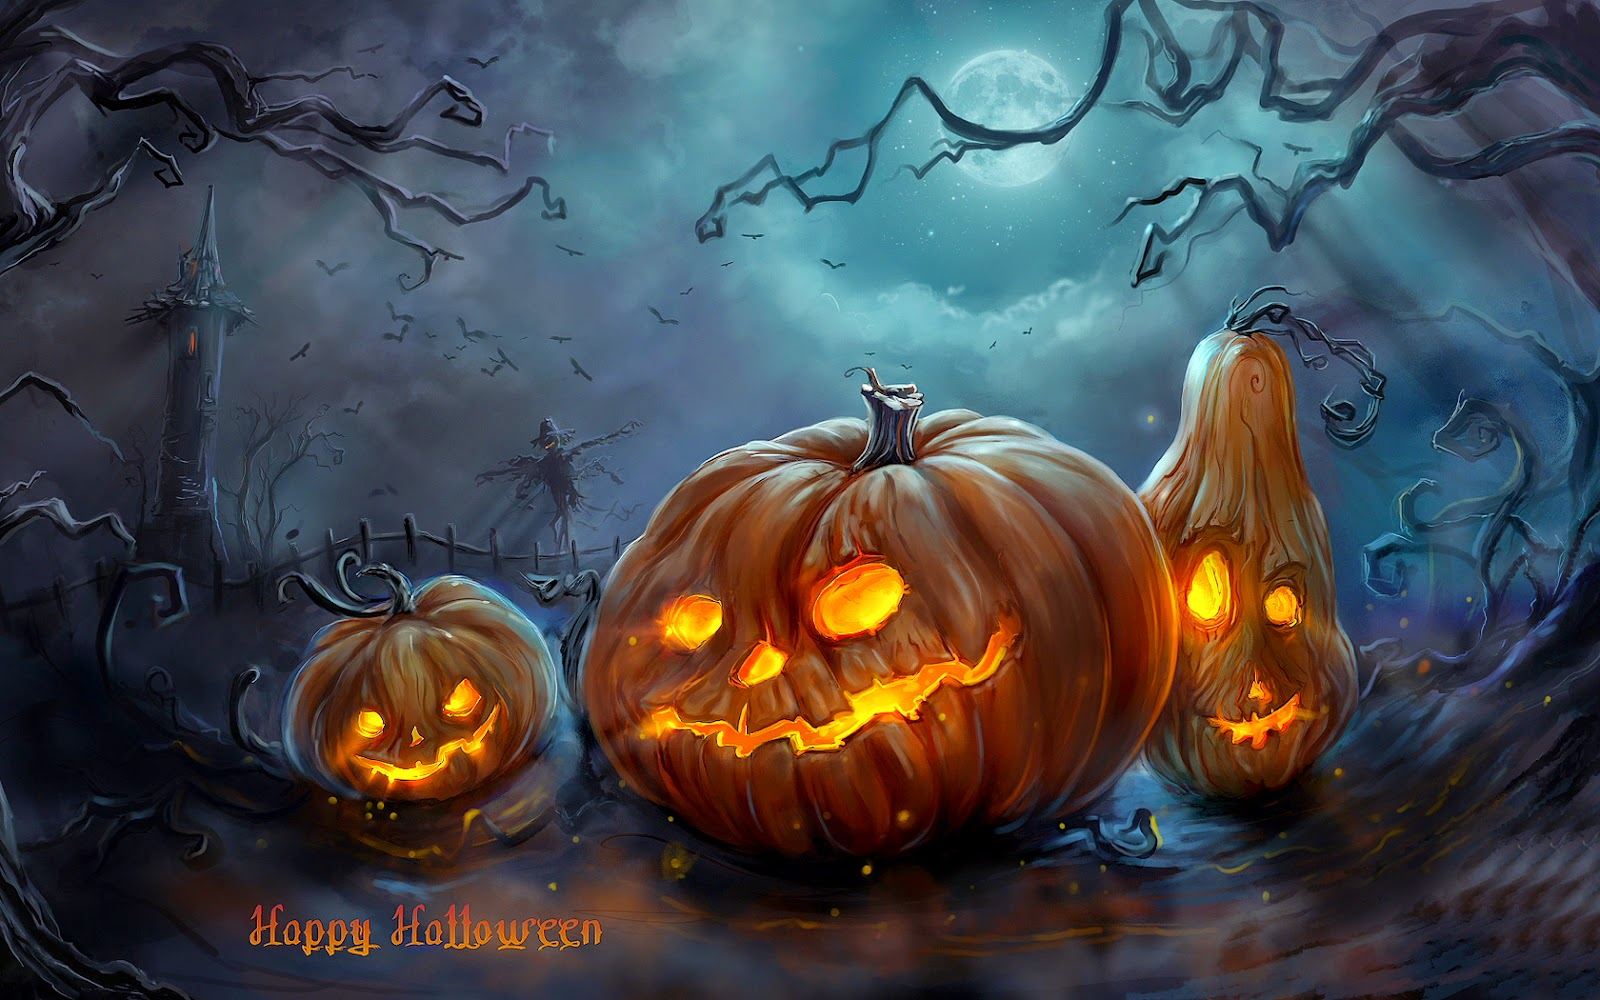 BOOst Halloween Sales with Email Marketing